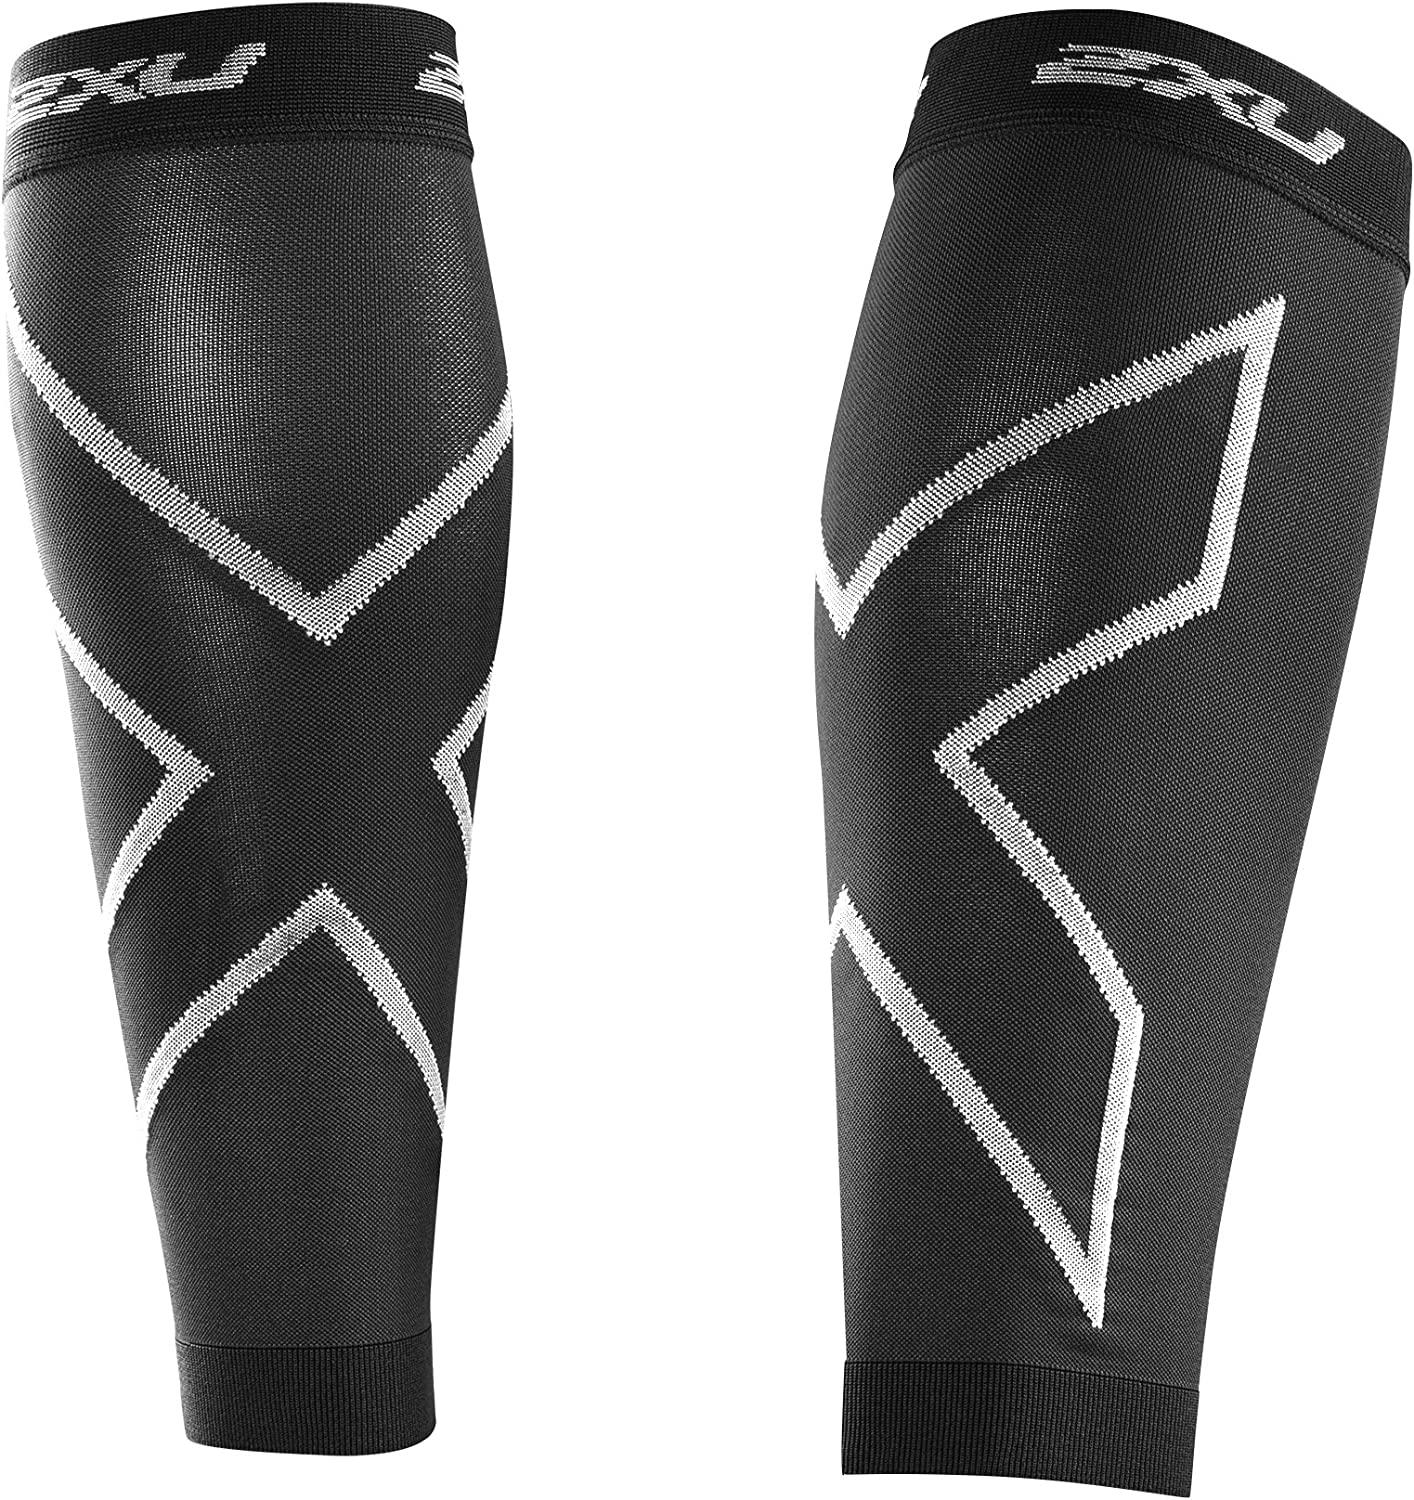 2XU Flex Recovery Leg Sleeves